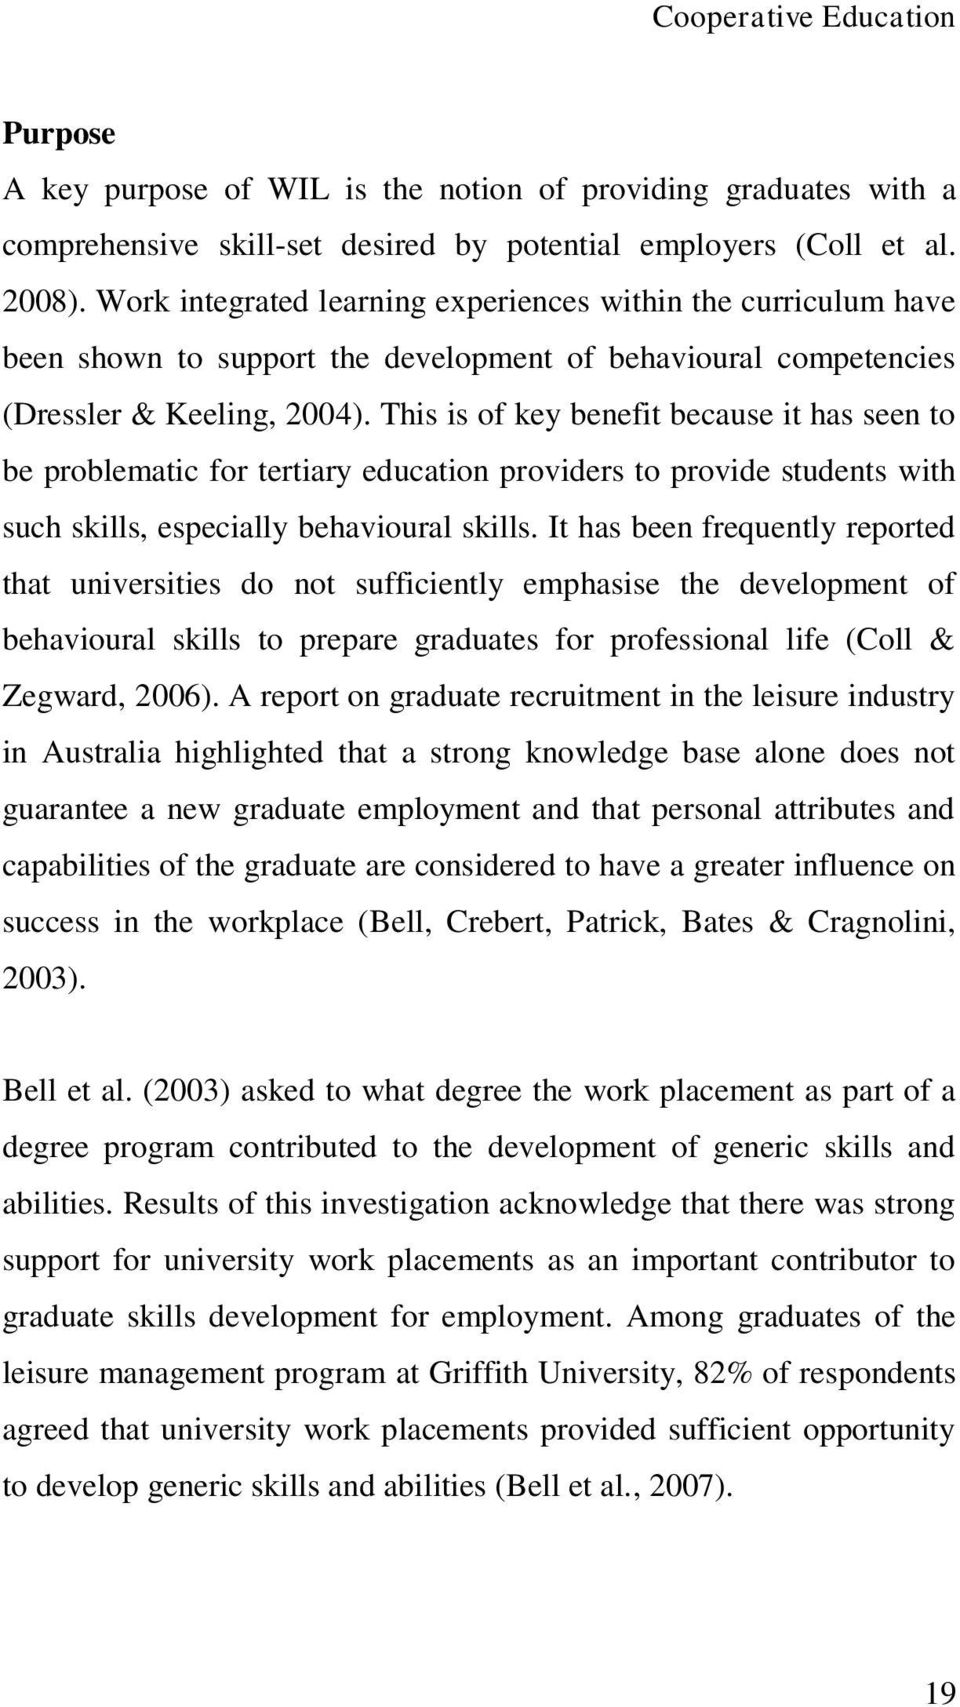 This is of key benefit because it has seen to be problematic for tertiary education providers to provide students with such skills, especially behavioural skills.